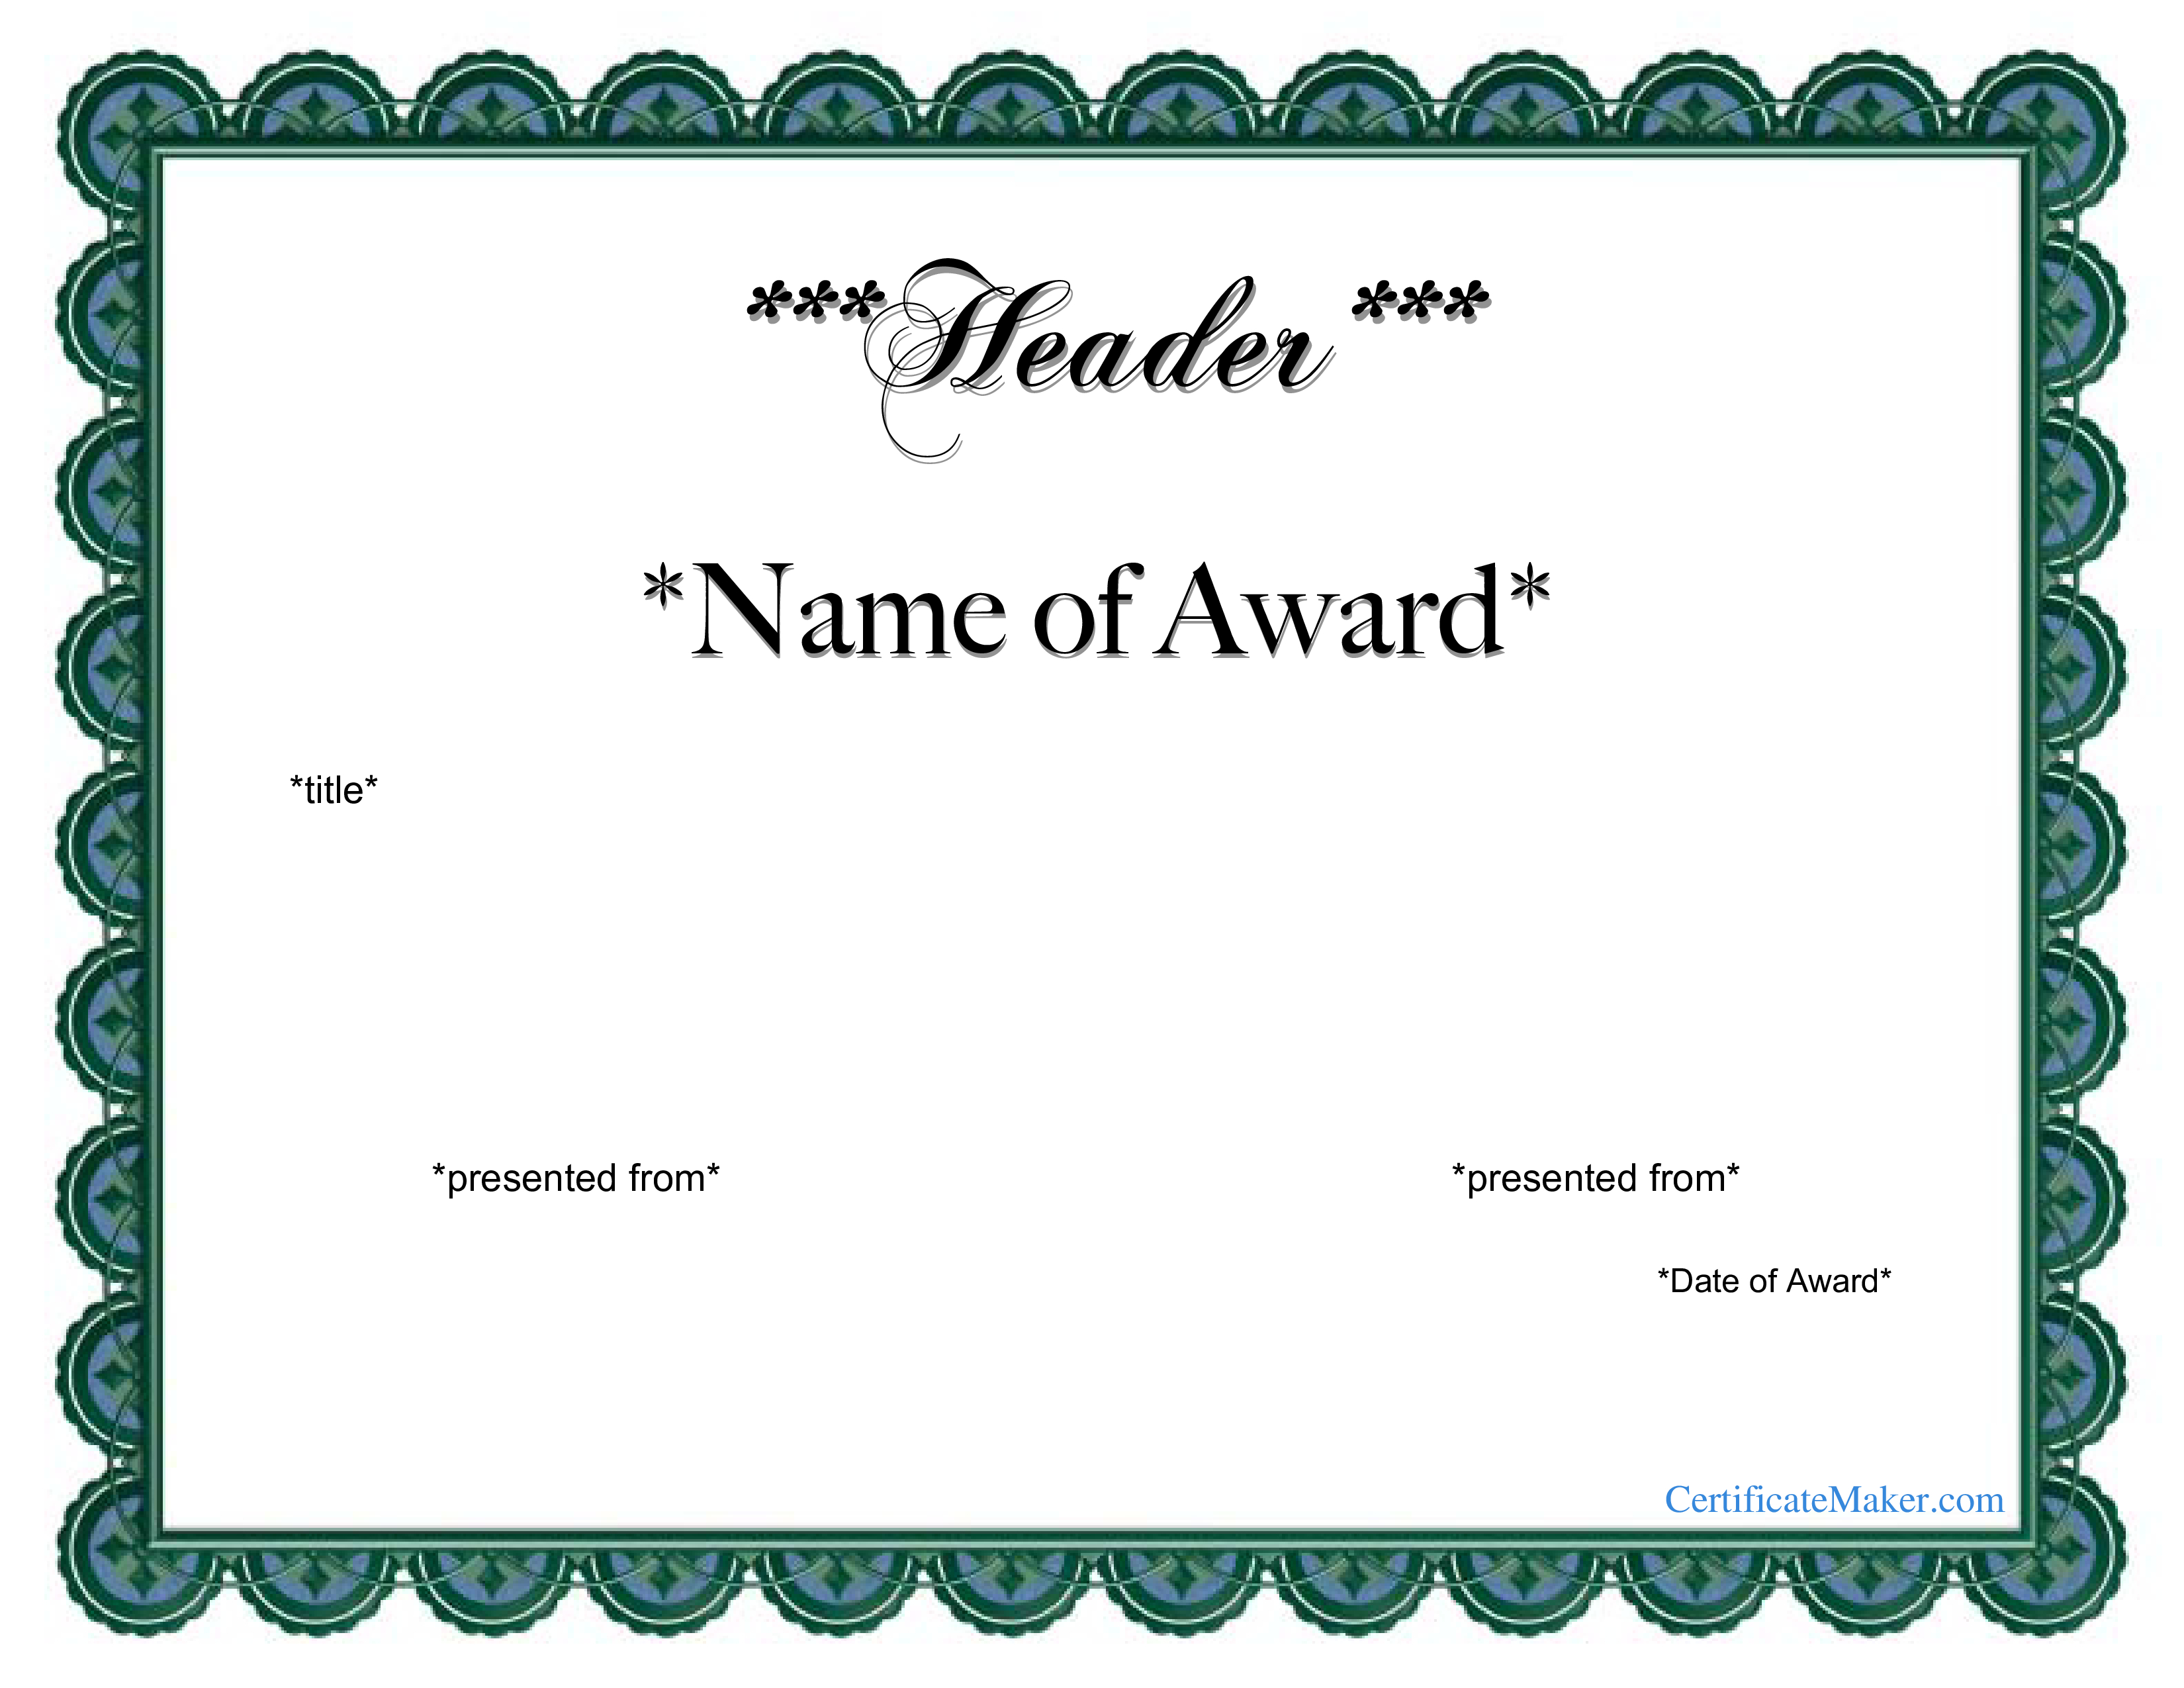 Free Customizable Award Certificates - Demir.iso-Consulting.co - Free Printable Soccer Certificate Templates